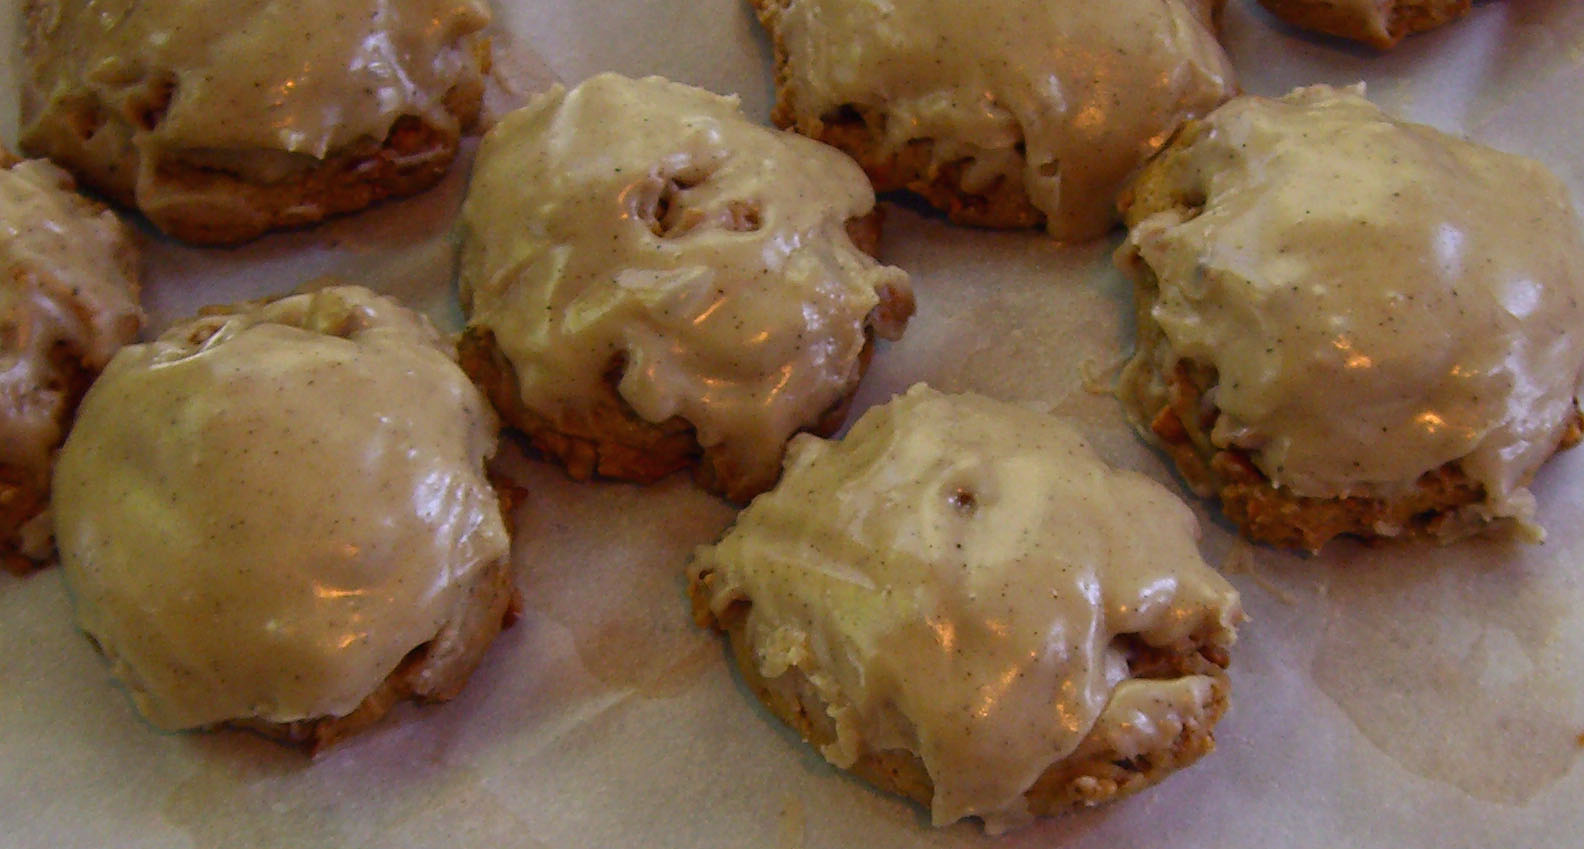 Toasted Cashew Cookies with Browned Butter Frosting